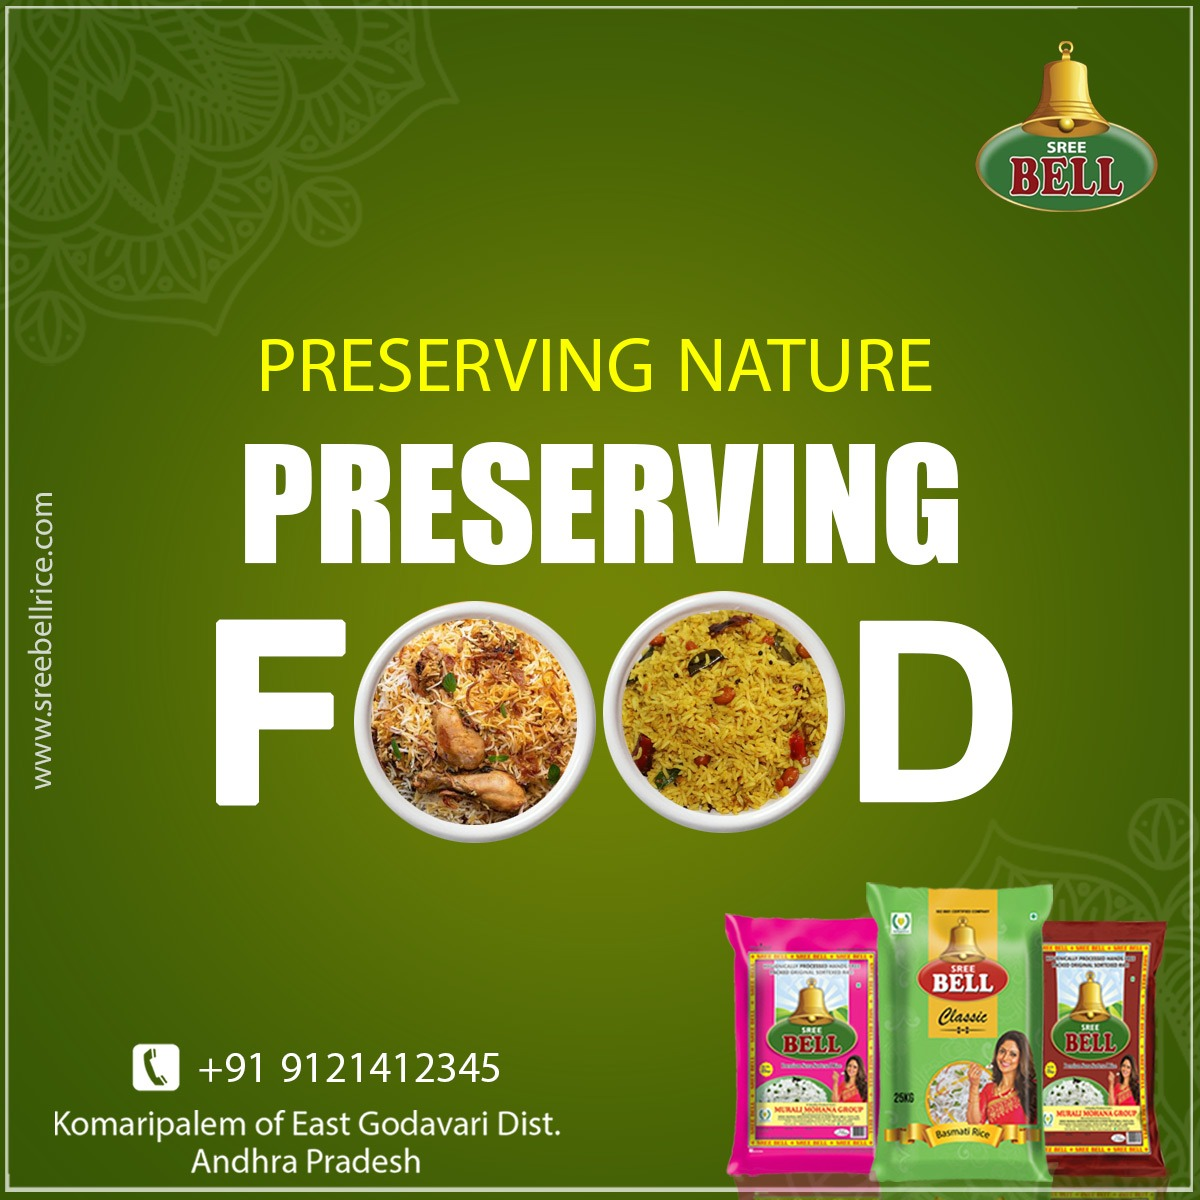 Preserving Nature, Preserving Food. Contact Us: 9121412345 Visit Us: https://t.co/bq5iElv5xG INSTAGRAM: https://t.co/ox2Ezzp9hh TWITTER: https://t.co/yhmT0Hbmqh #bellfresh #foodies #sribellrice #franchise #rice #indianfood #bell #brand #foodfreaks #alloverindia #healthylifestyle https://t.co/uJxA1dIG7a